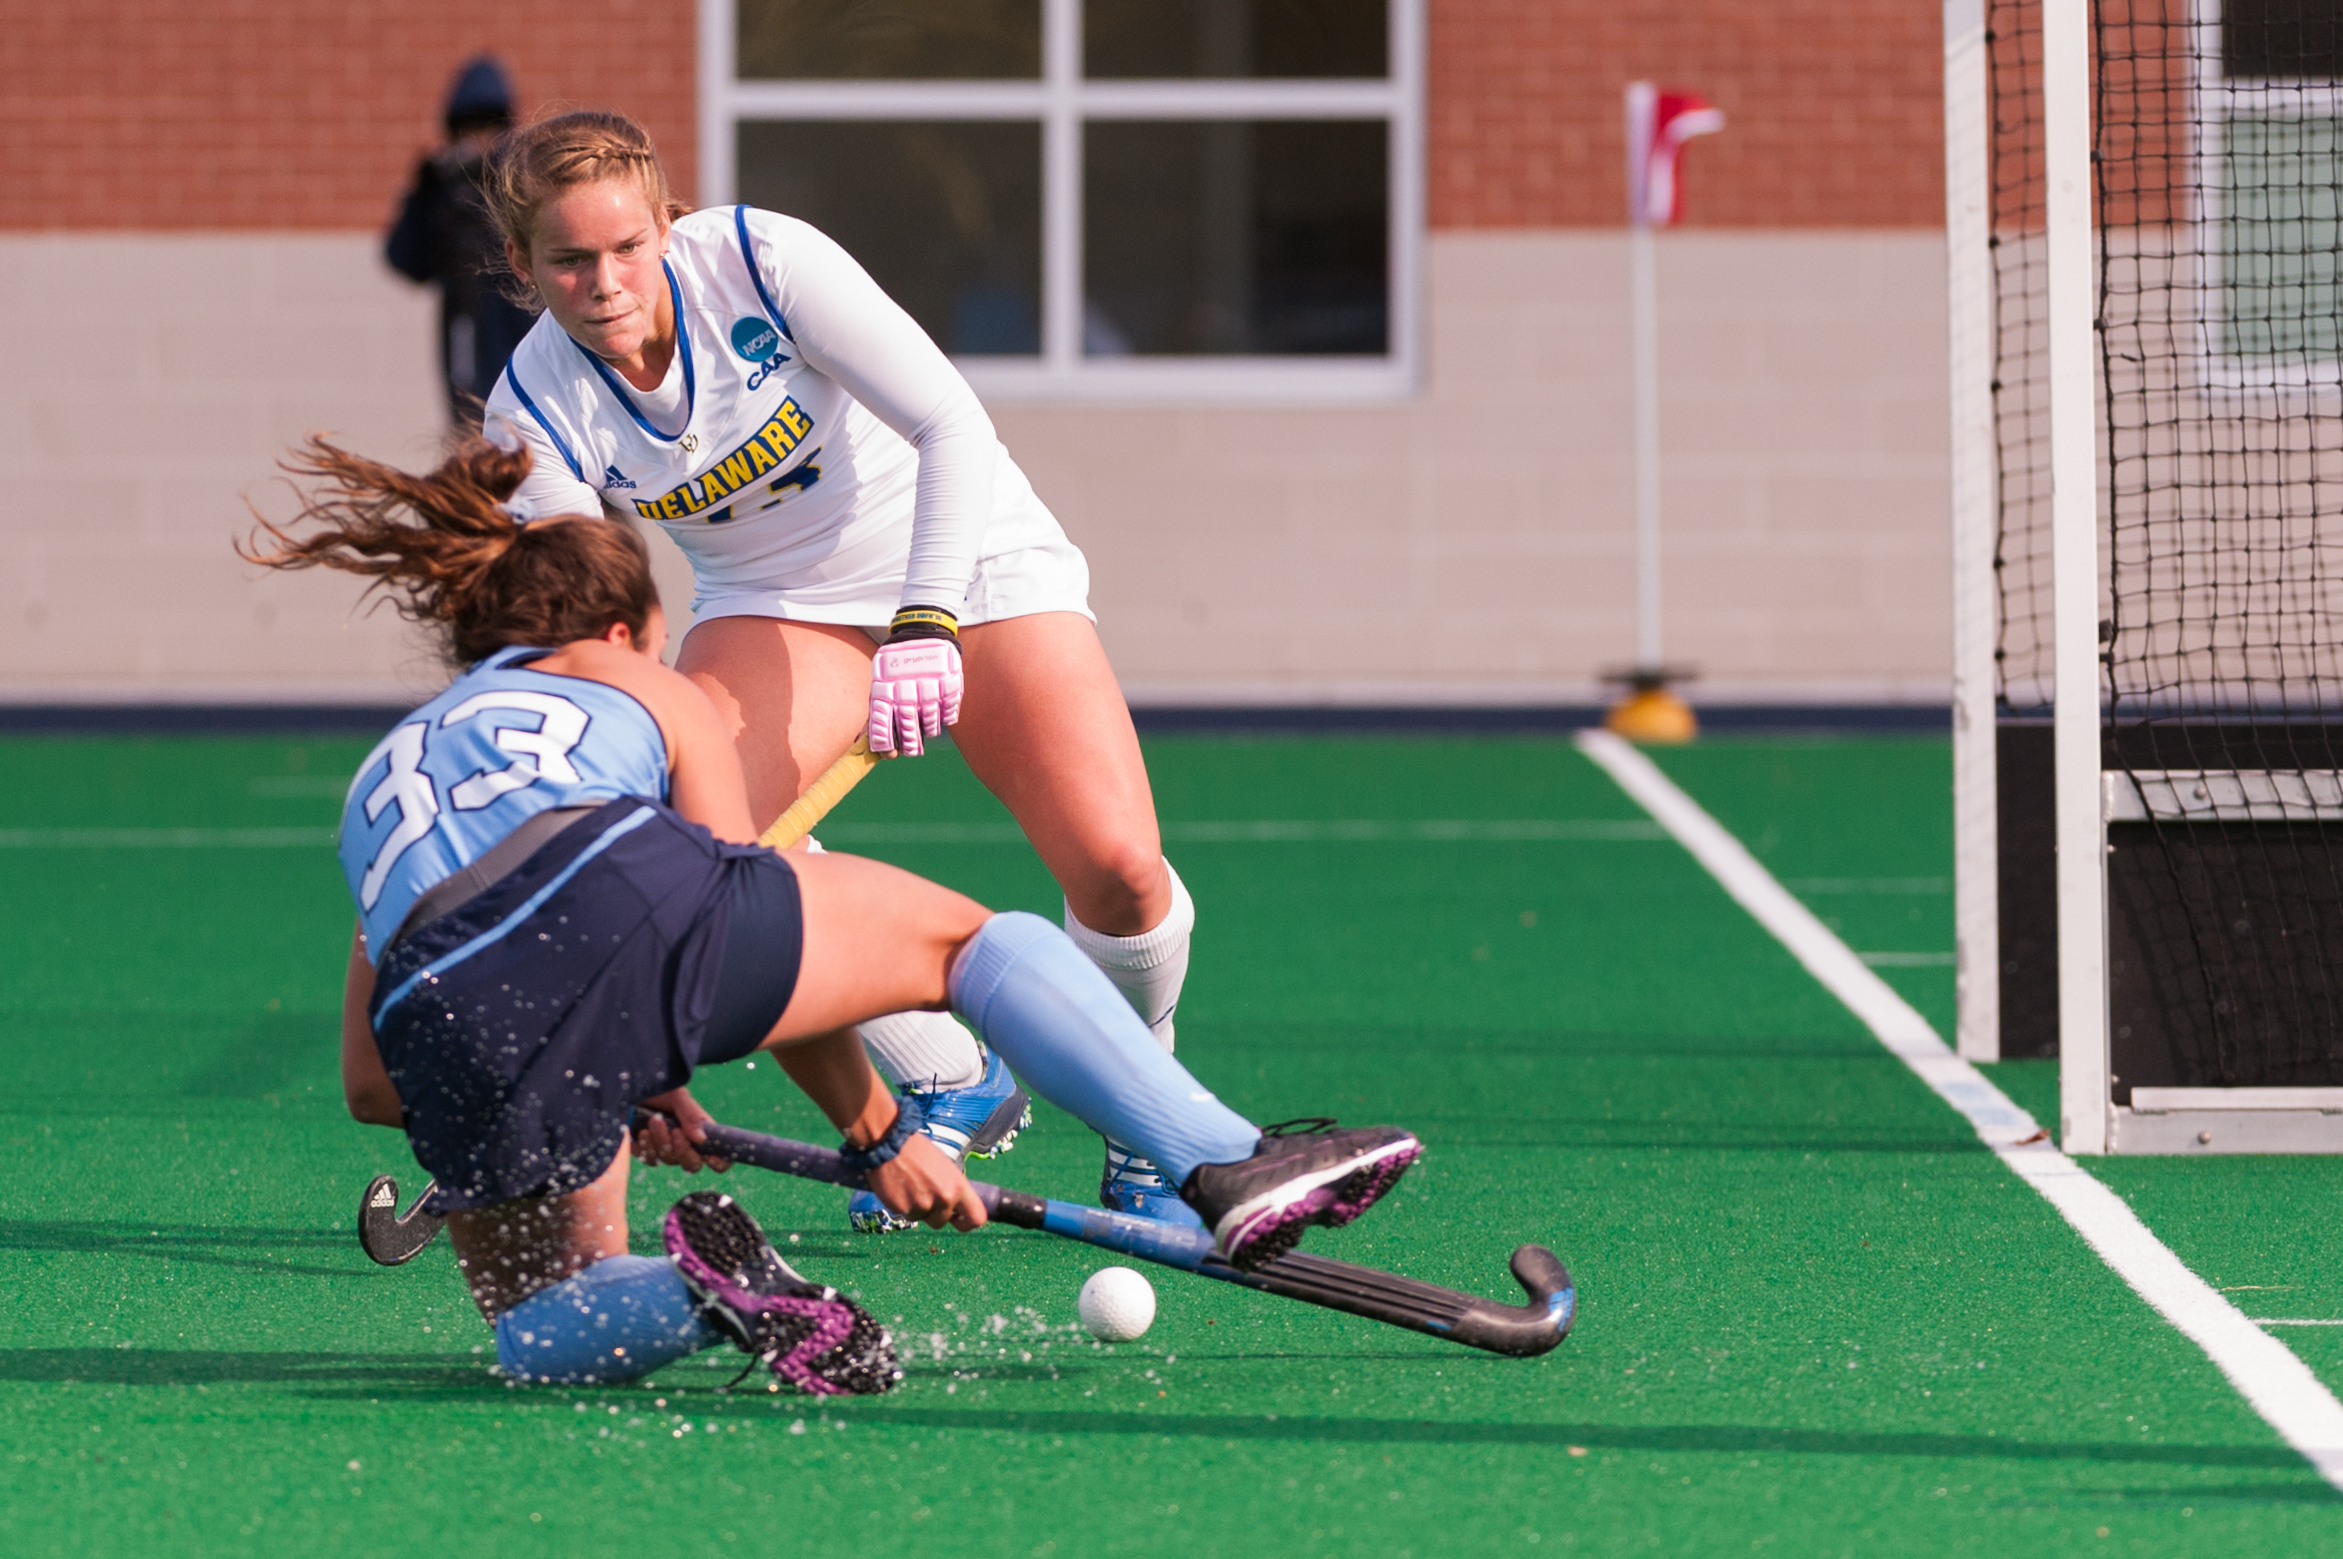 North Carolina midfielder Kristy Bernatchez (3) takes a shot against Delaware midfielder Kayla Devlin (13) during the 2016 NCAA DI National Championship at the L.R. Hill Sports Complex in Norfolk, VA. Delaware defeated North Carolina 3-2.